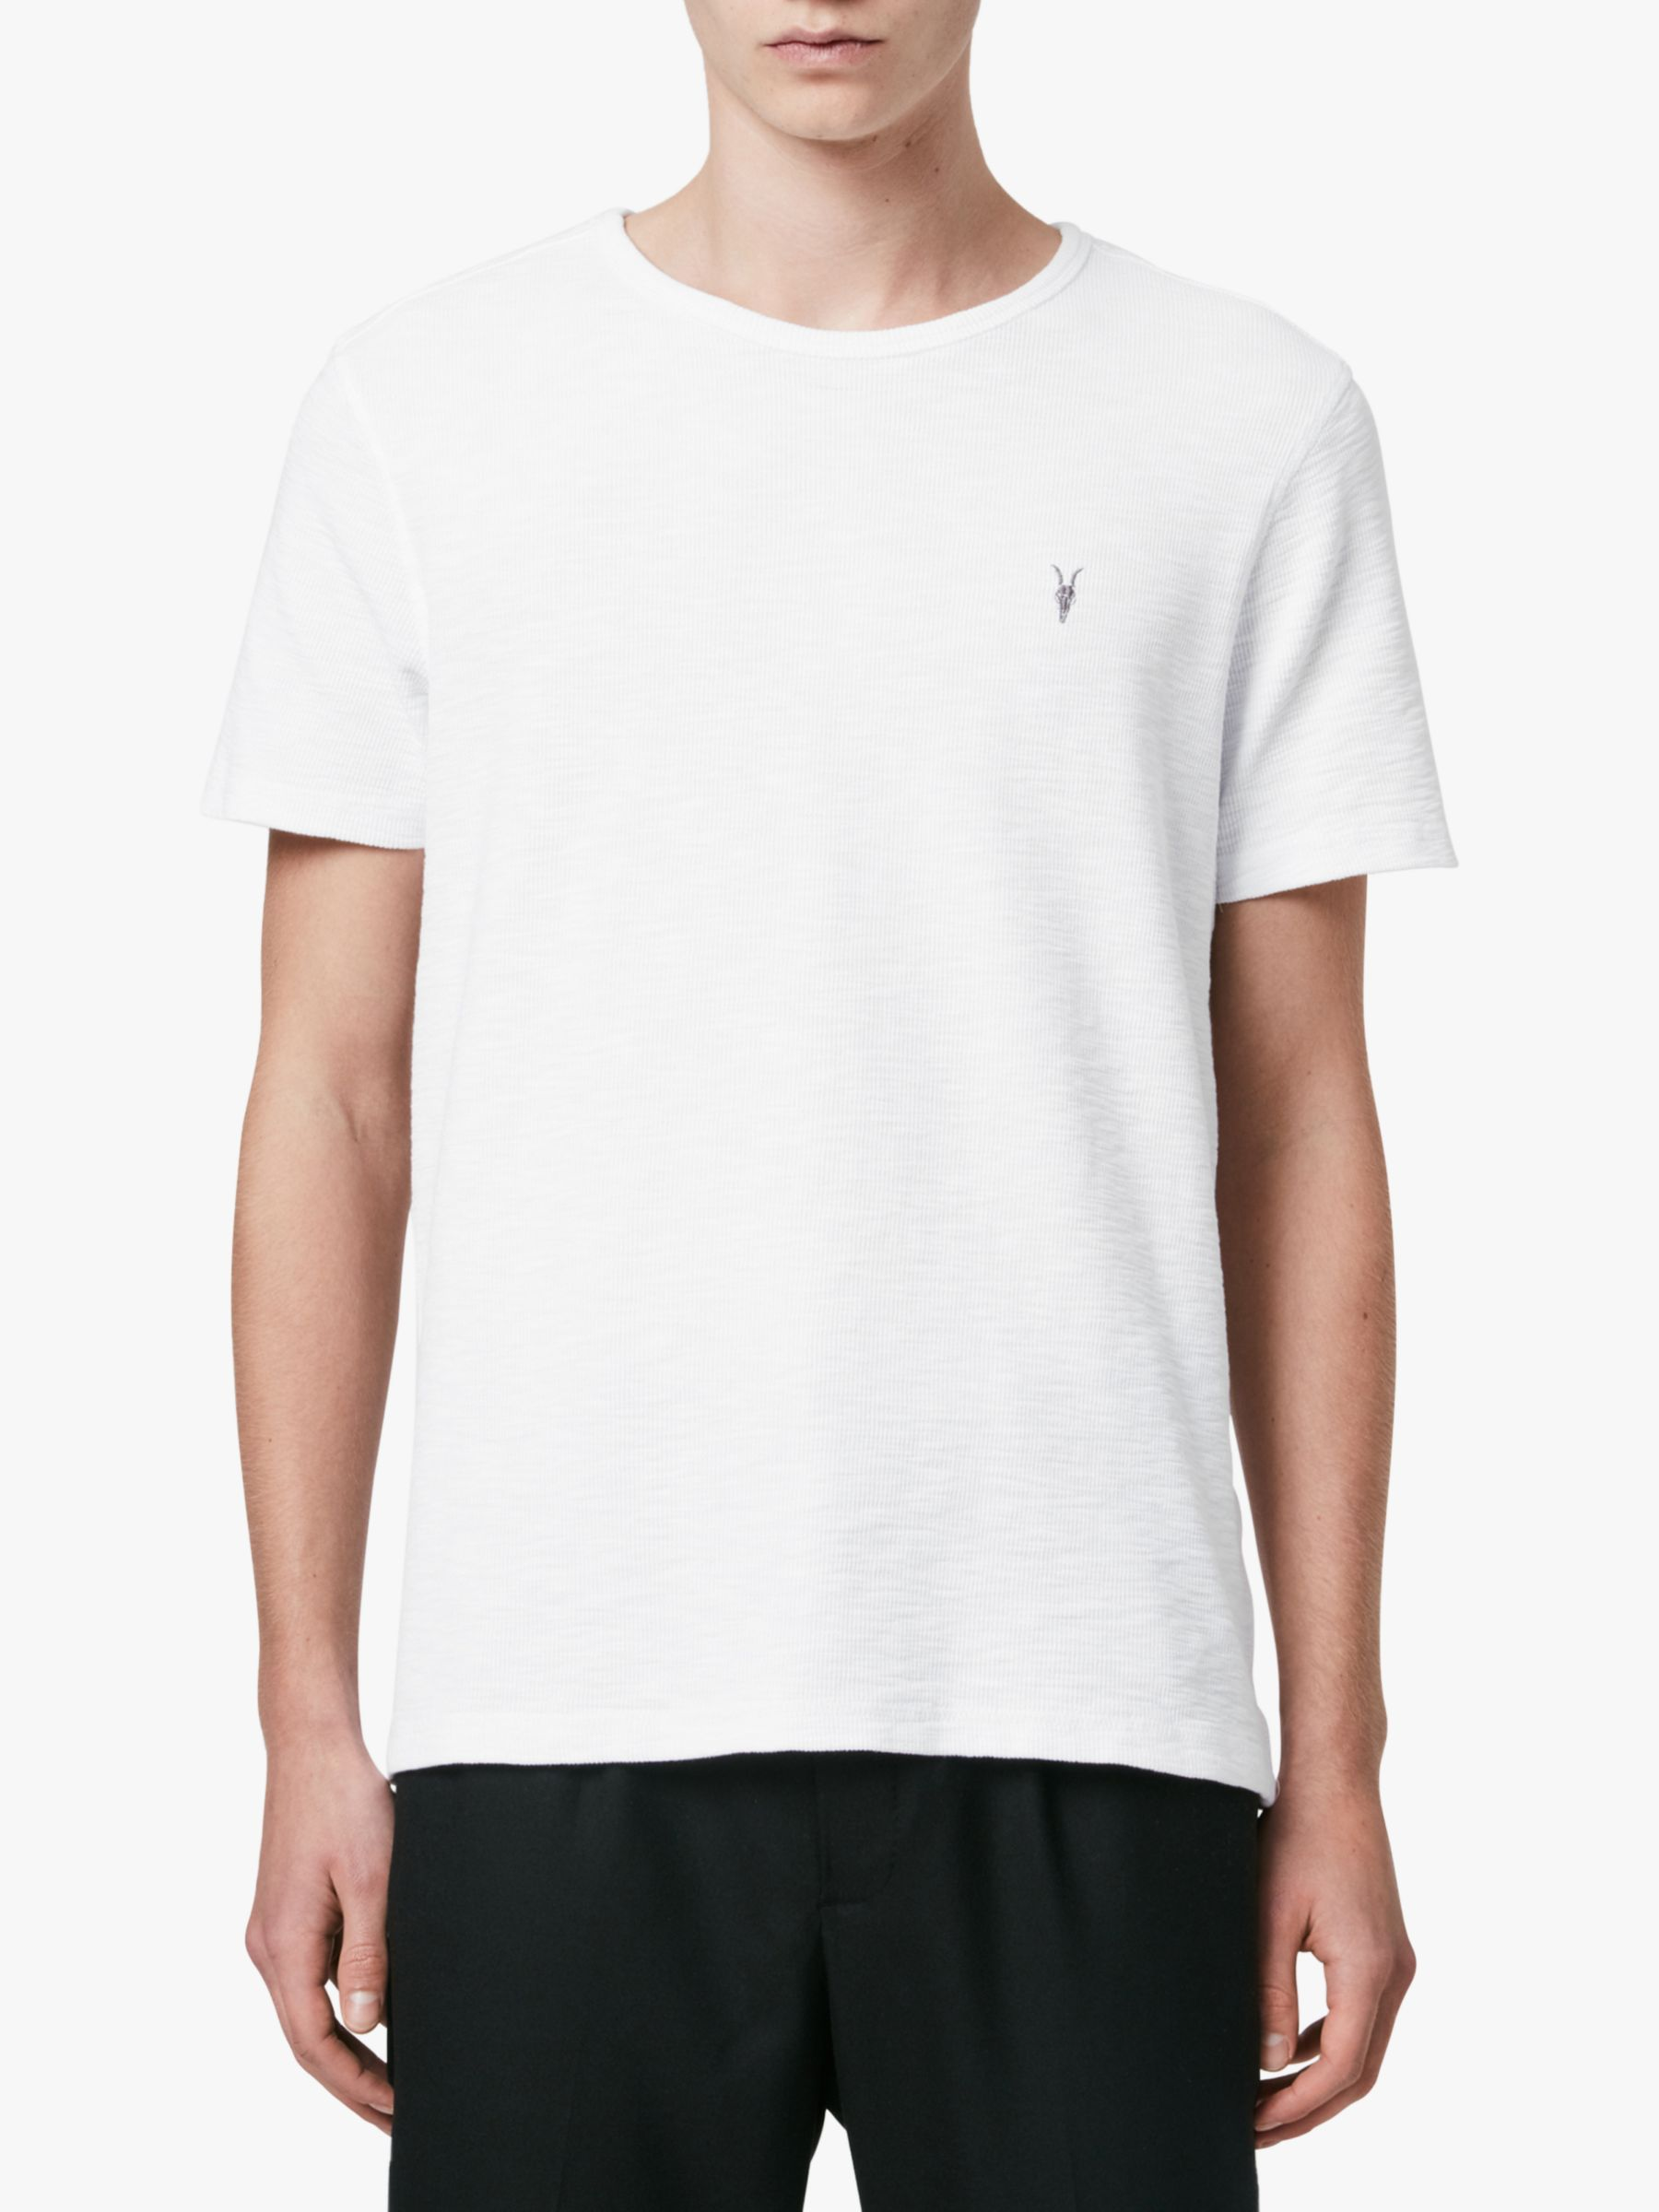 AllSaints AllSaints Muse Crew Neck T-Shirt, Optic White